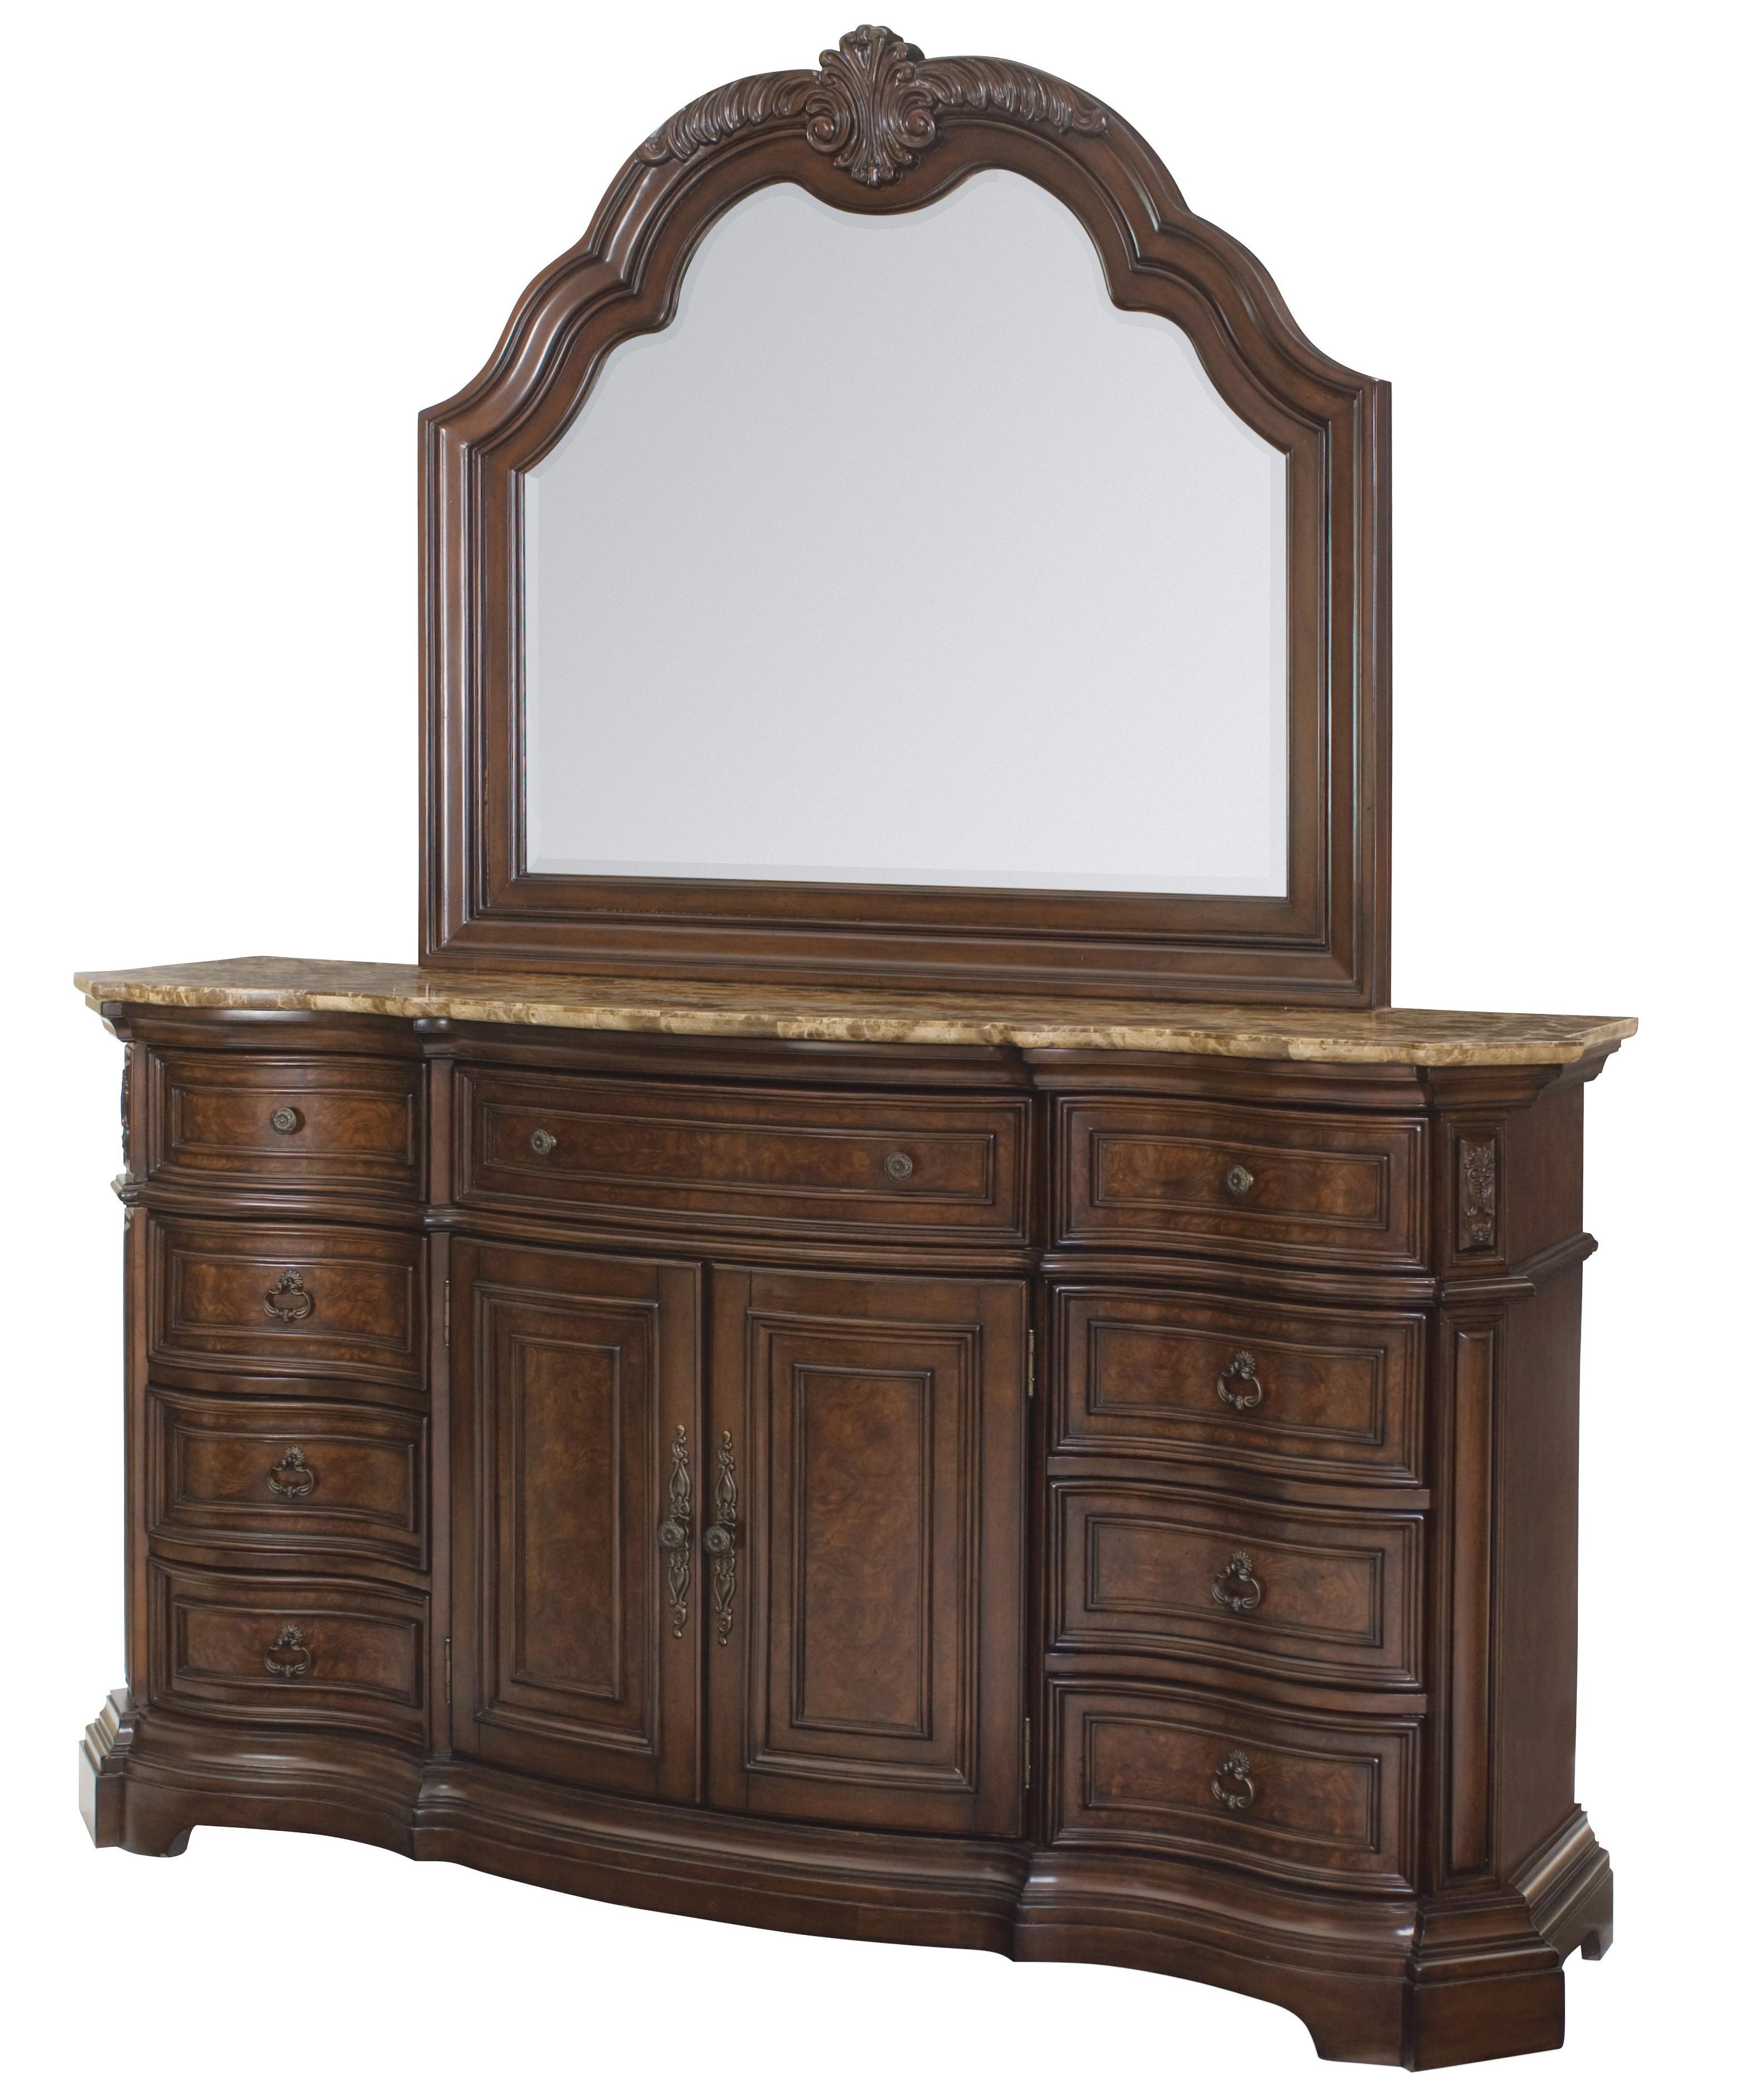 Samuel Lawrence Edington Dresser and Mirror Combo - Item Number: 8328-030+015